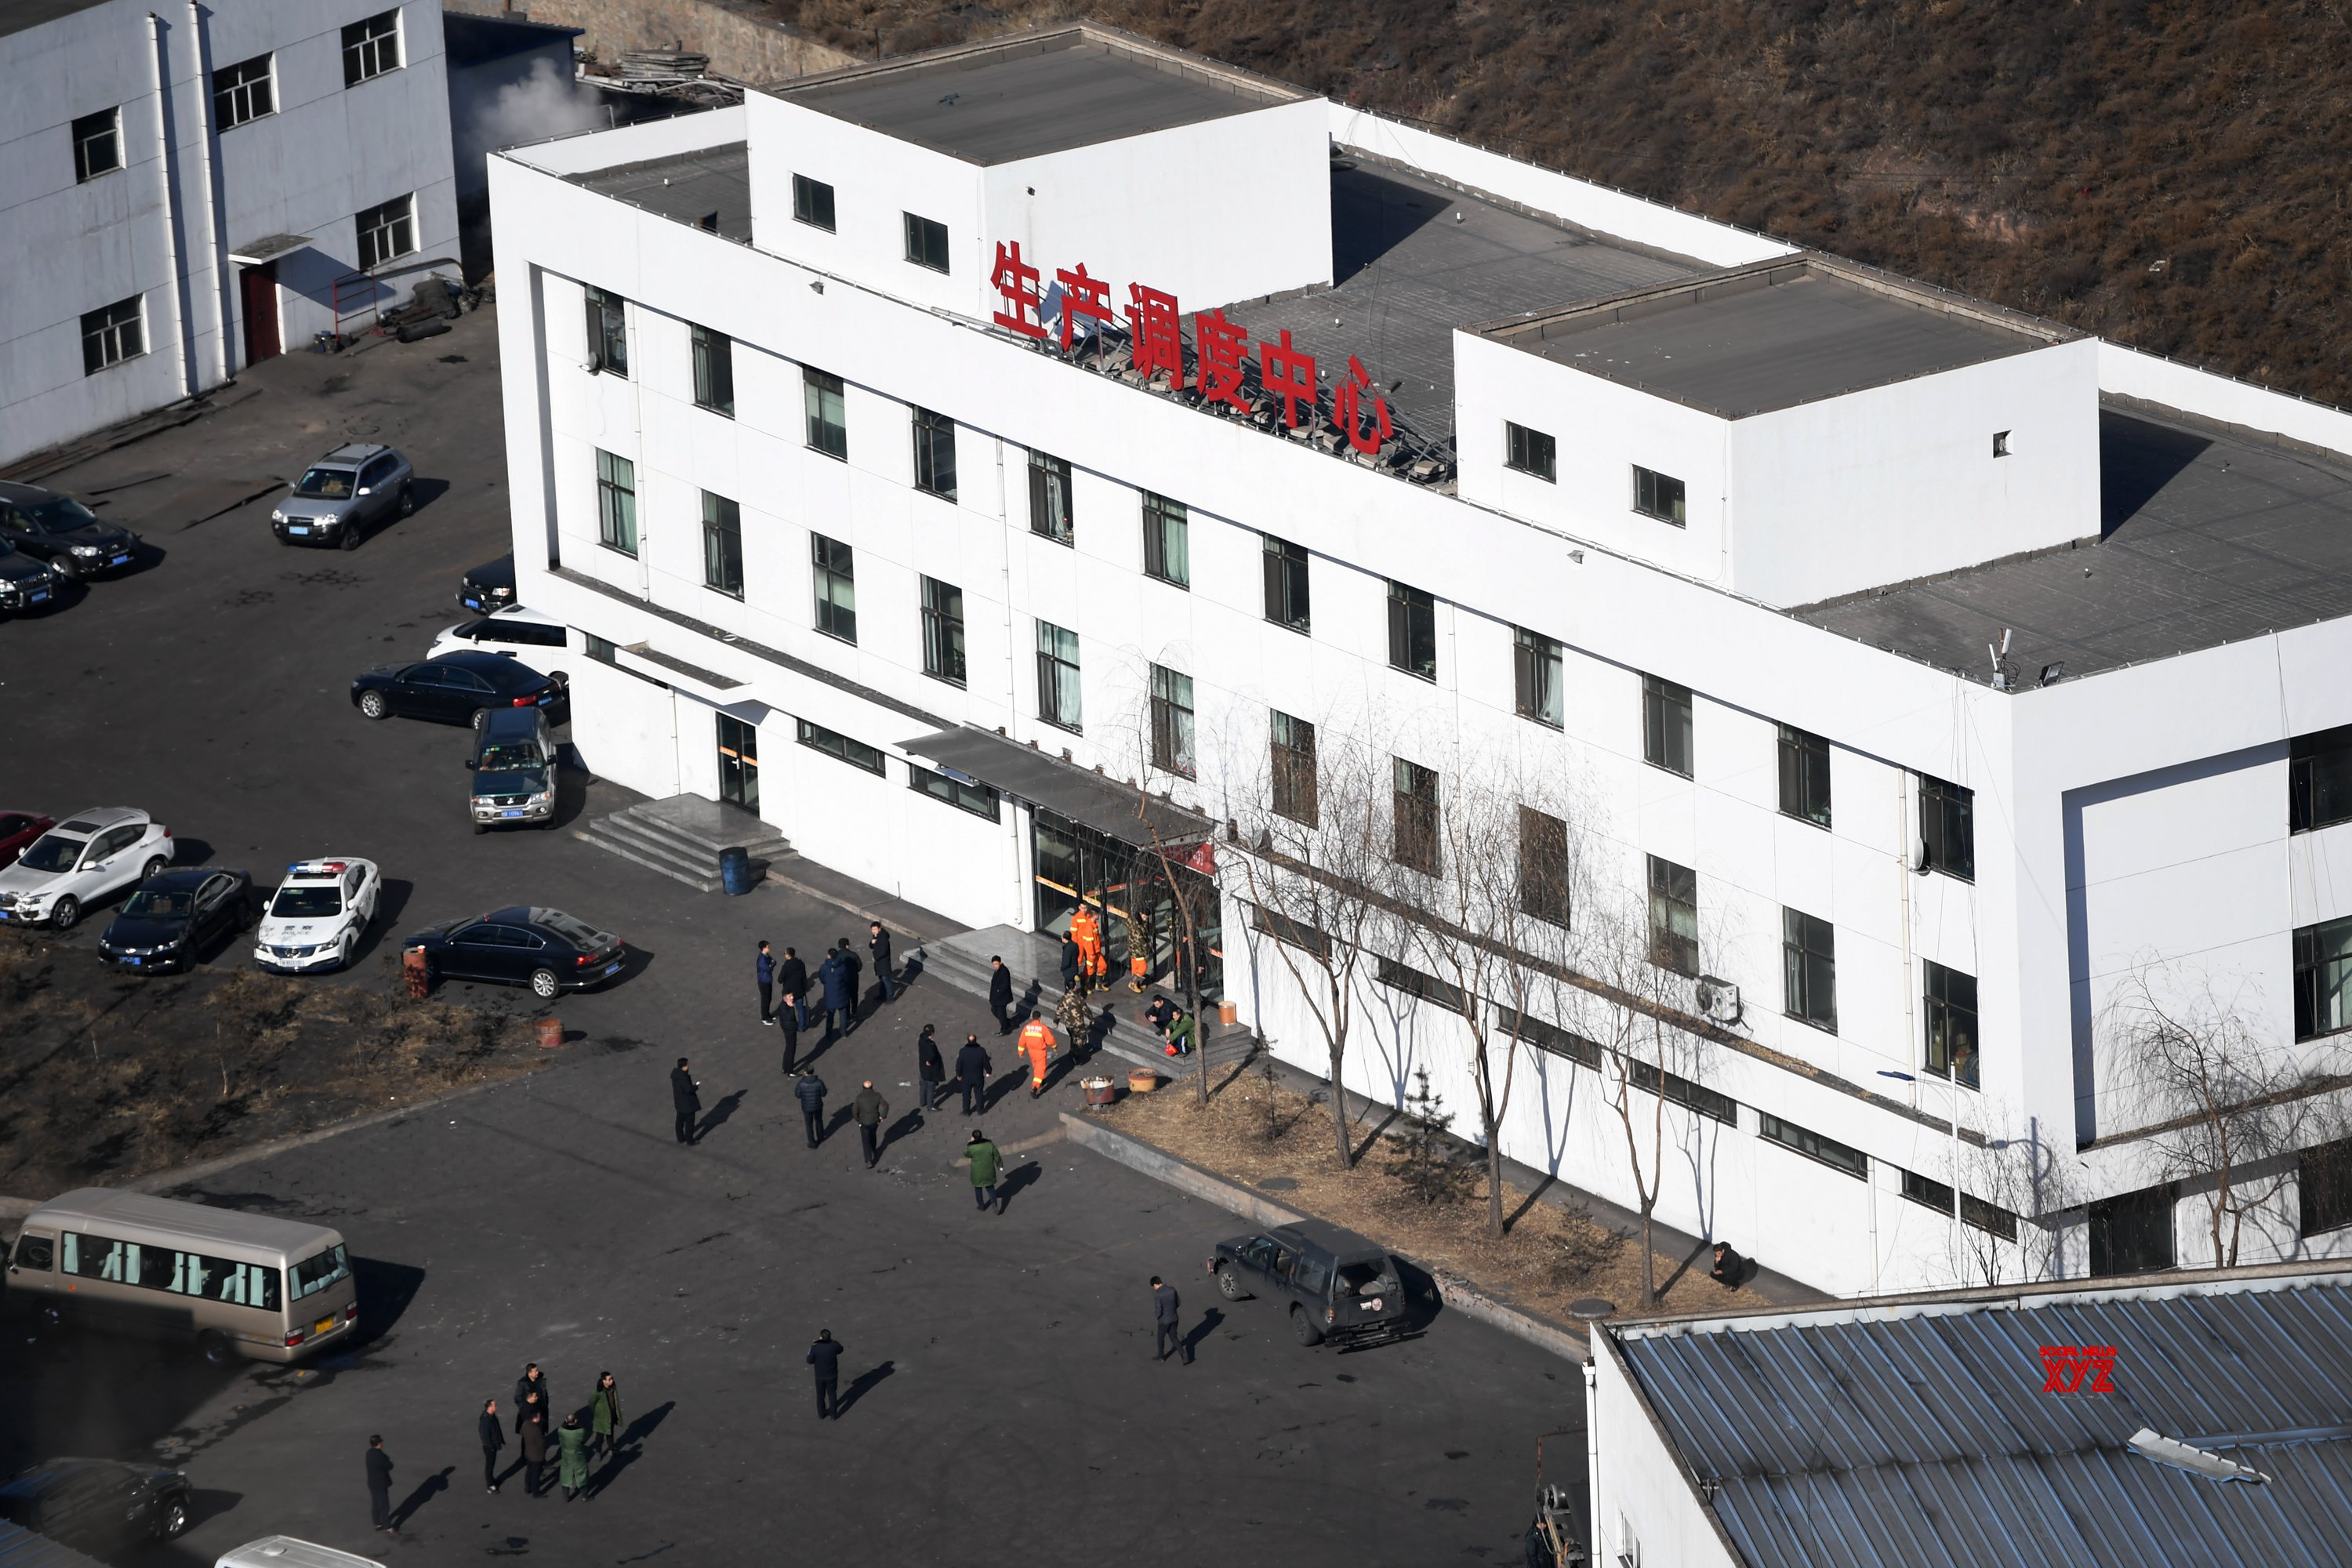 CHINA - SHAANXI - SHENMU - COAL MINE ACCIDENT #Gallery